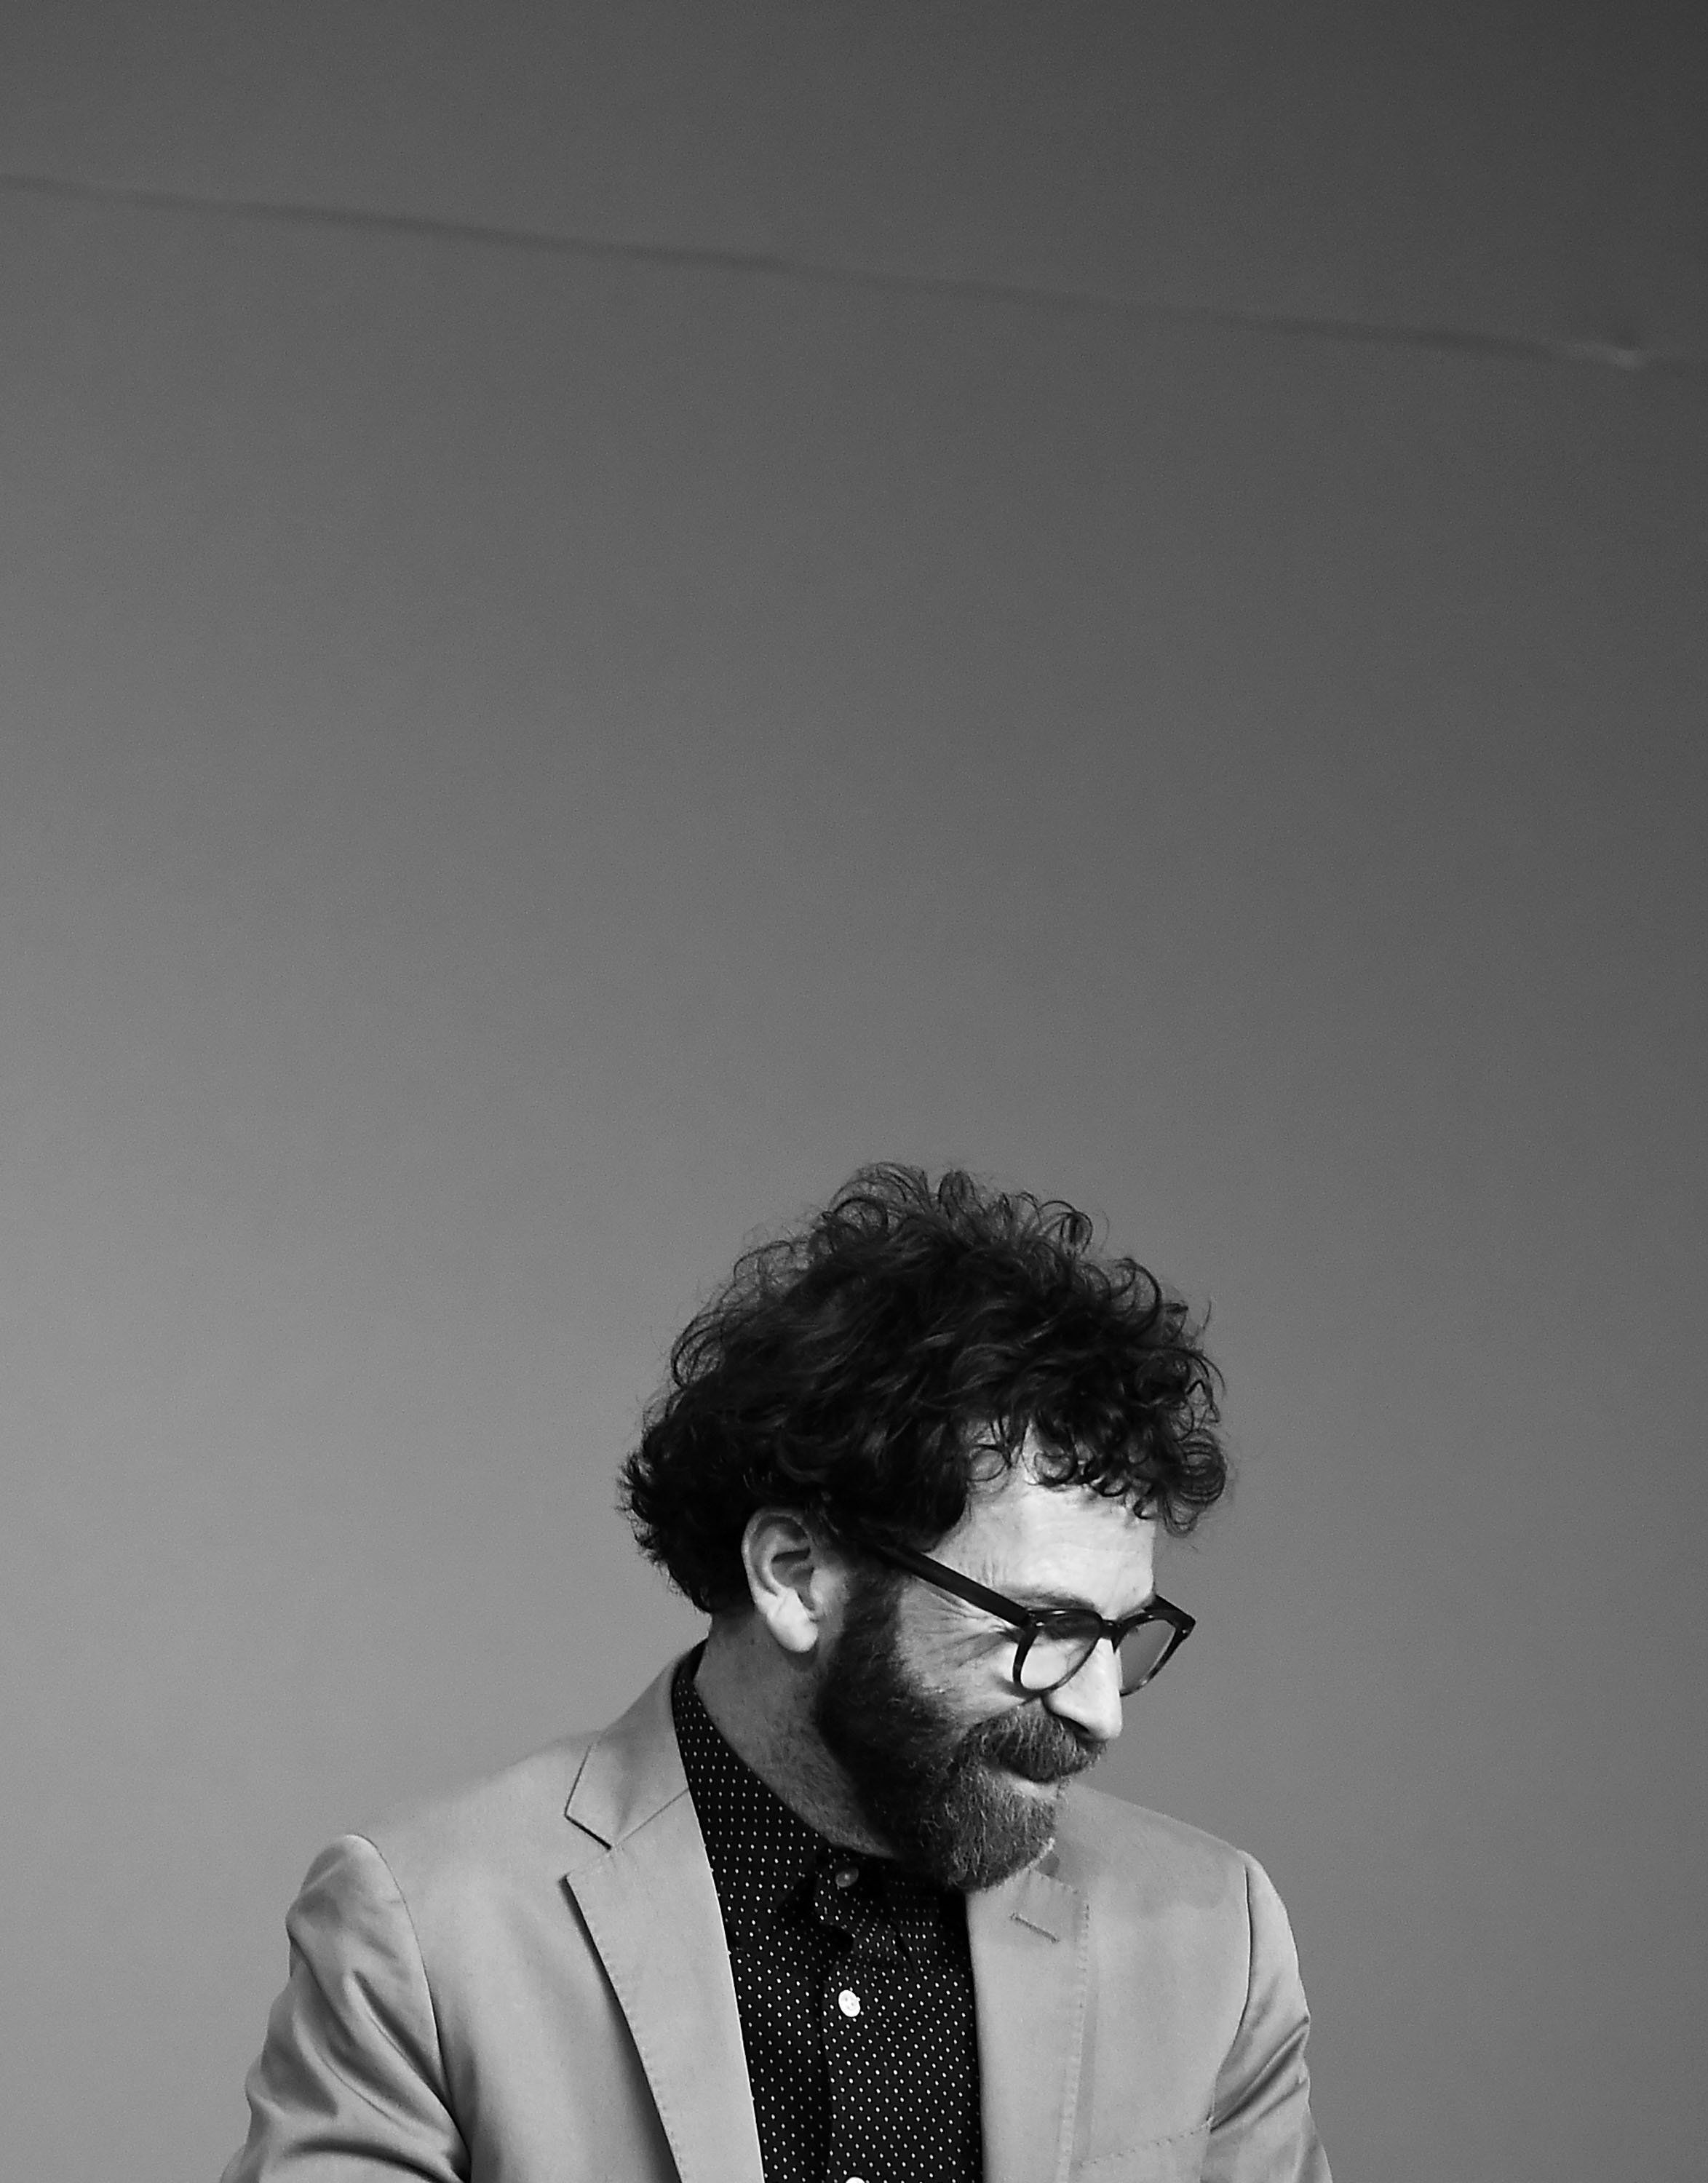 NEW YORK, NY - MARCH 07: (EDITORS NOTE: Image has been converted to black and white. Color version available) Director Charlie Kaufman attends Apple Store Soho Presents Meet The Filmmaker: Charlie Kaufman And Duke Johnson, 'Anomalisa' at Apple Store Soho on March 7, 2016 in New York City.  (Photo by Ilya S. Savenok/Getty Images)